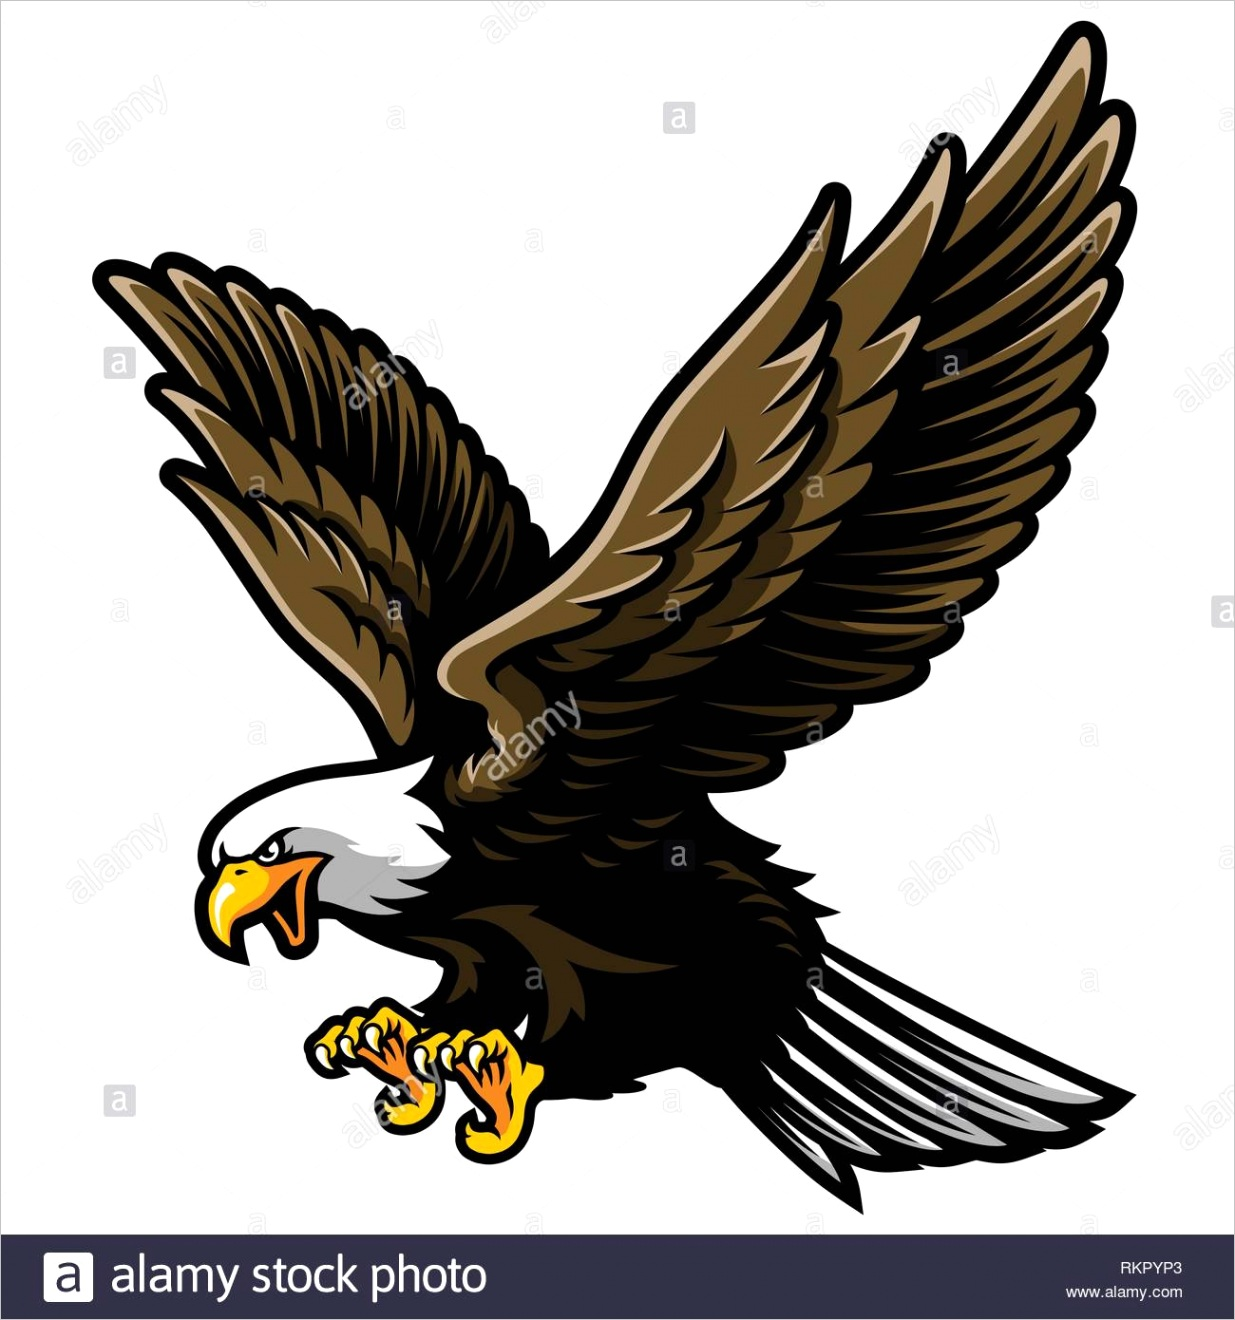 american bald eagle with open wings and claws in cartoon style image ml